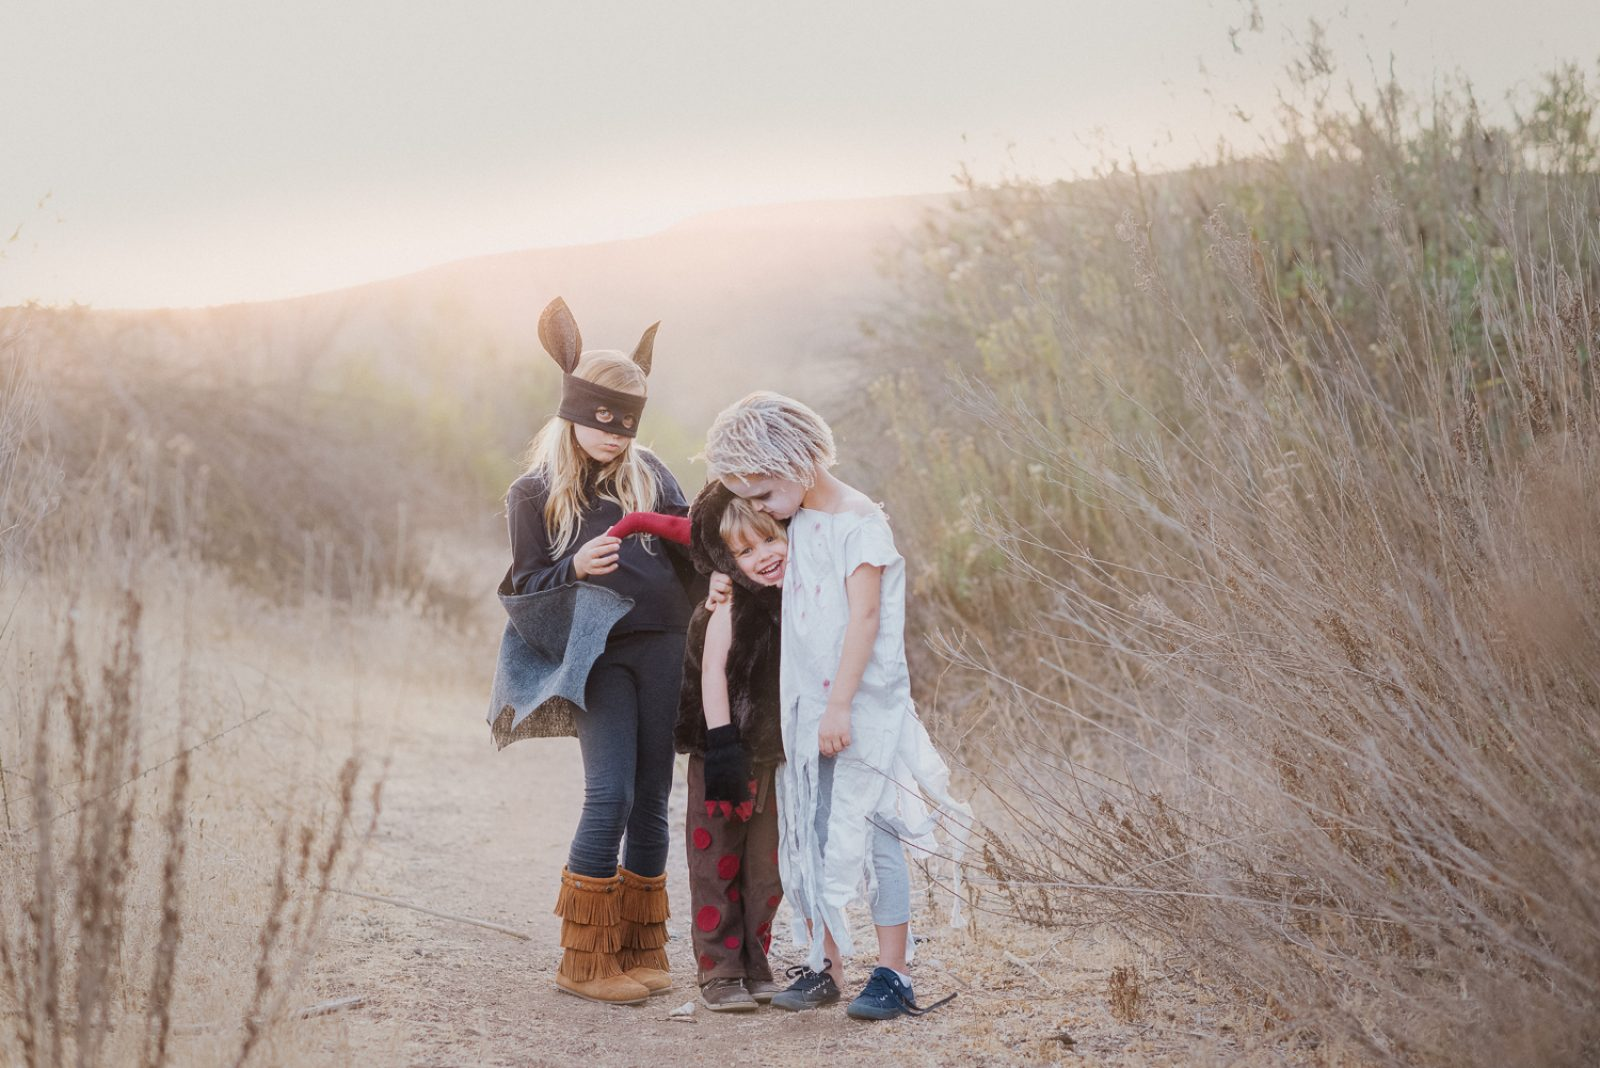 Our Halloween 2014 | Orange County Natural Light Photographer